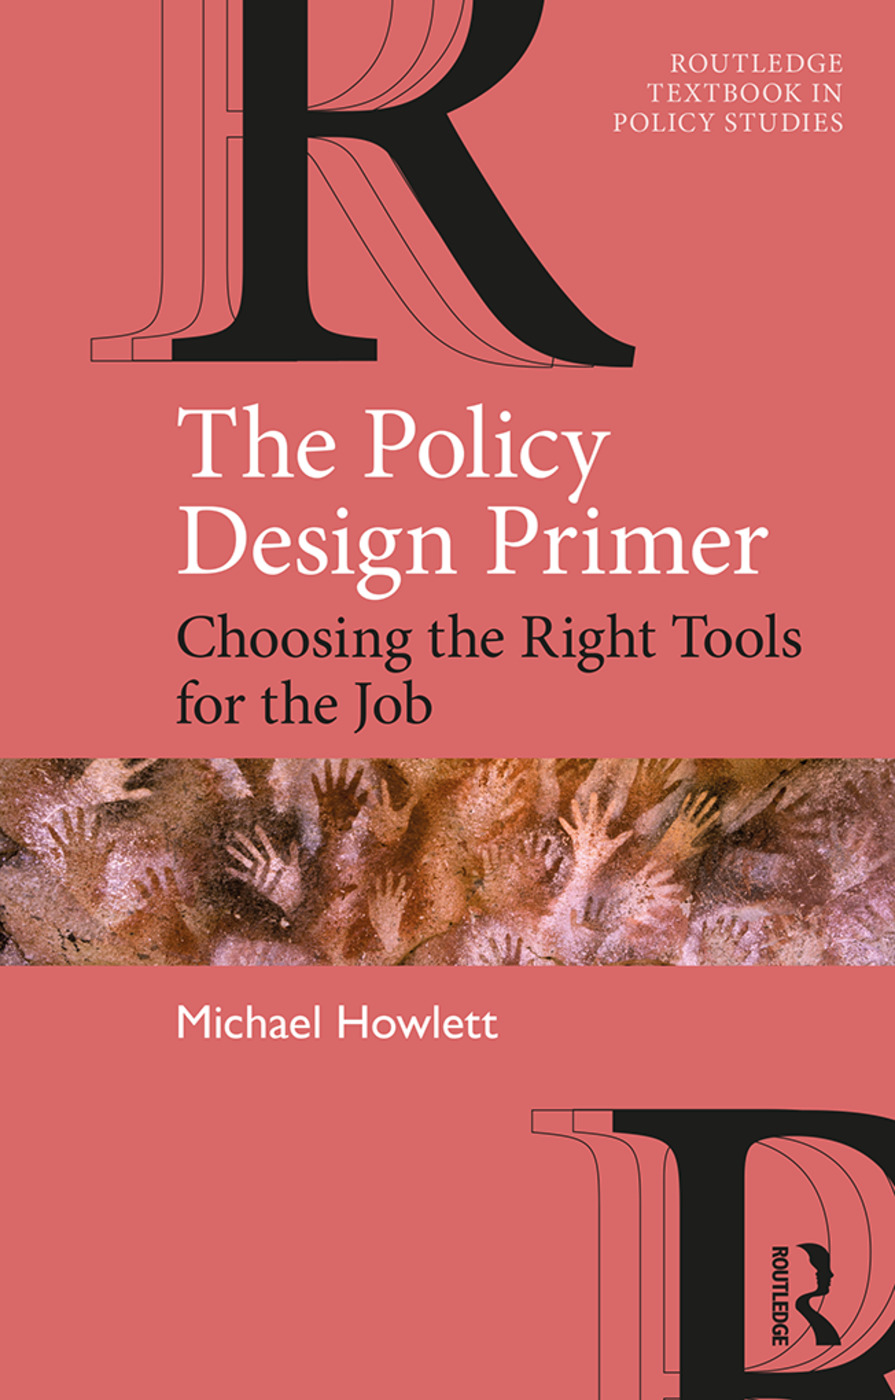 The Policy Design Primer: Choosing the Right Tools for the Job book cover